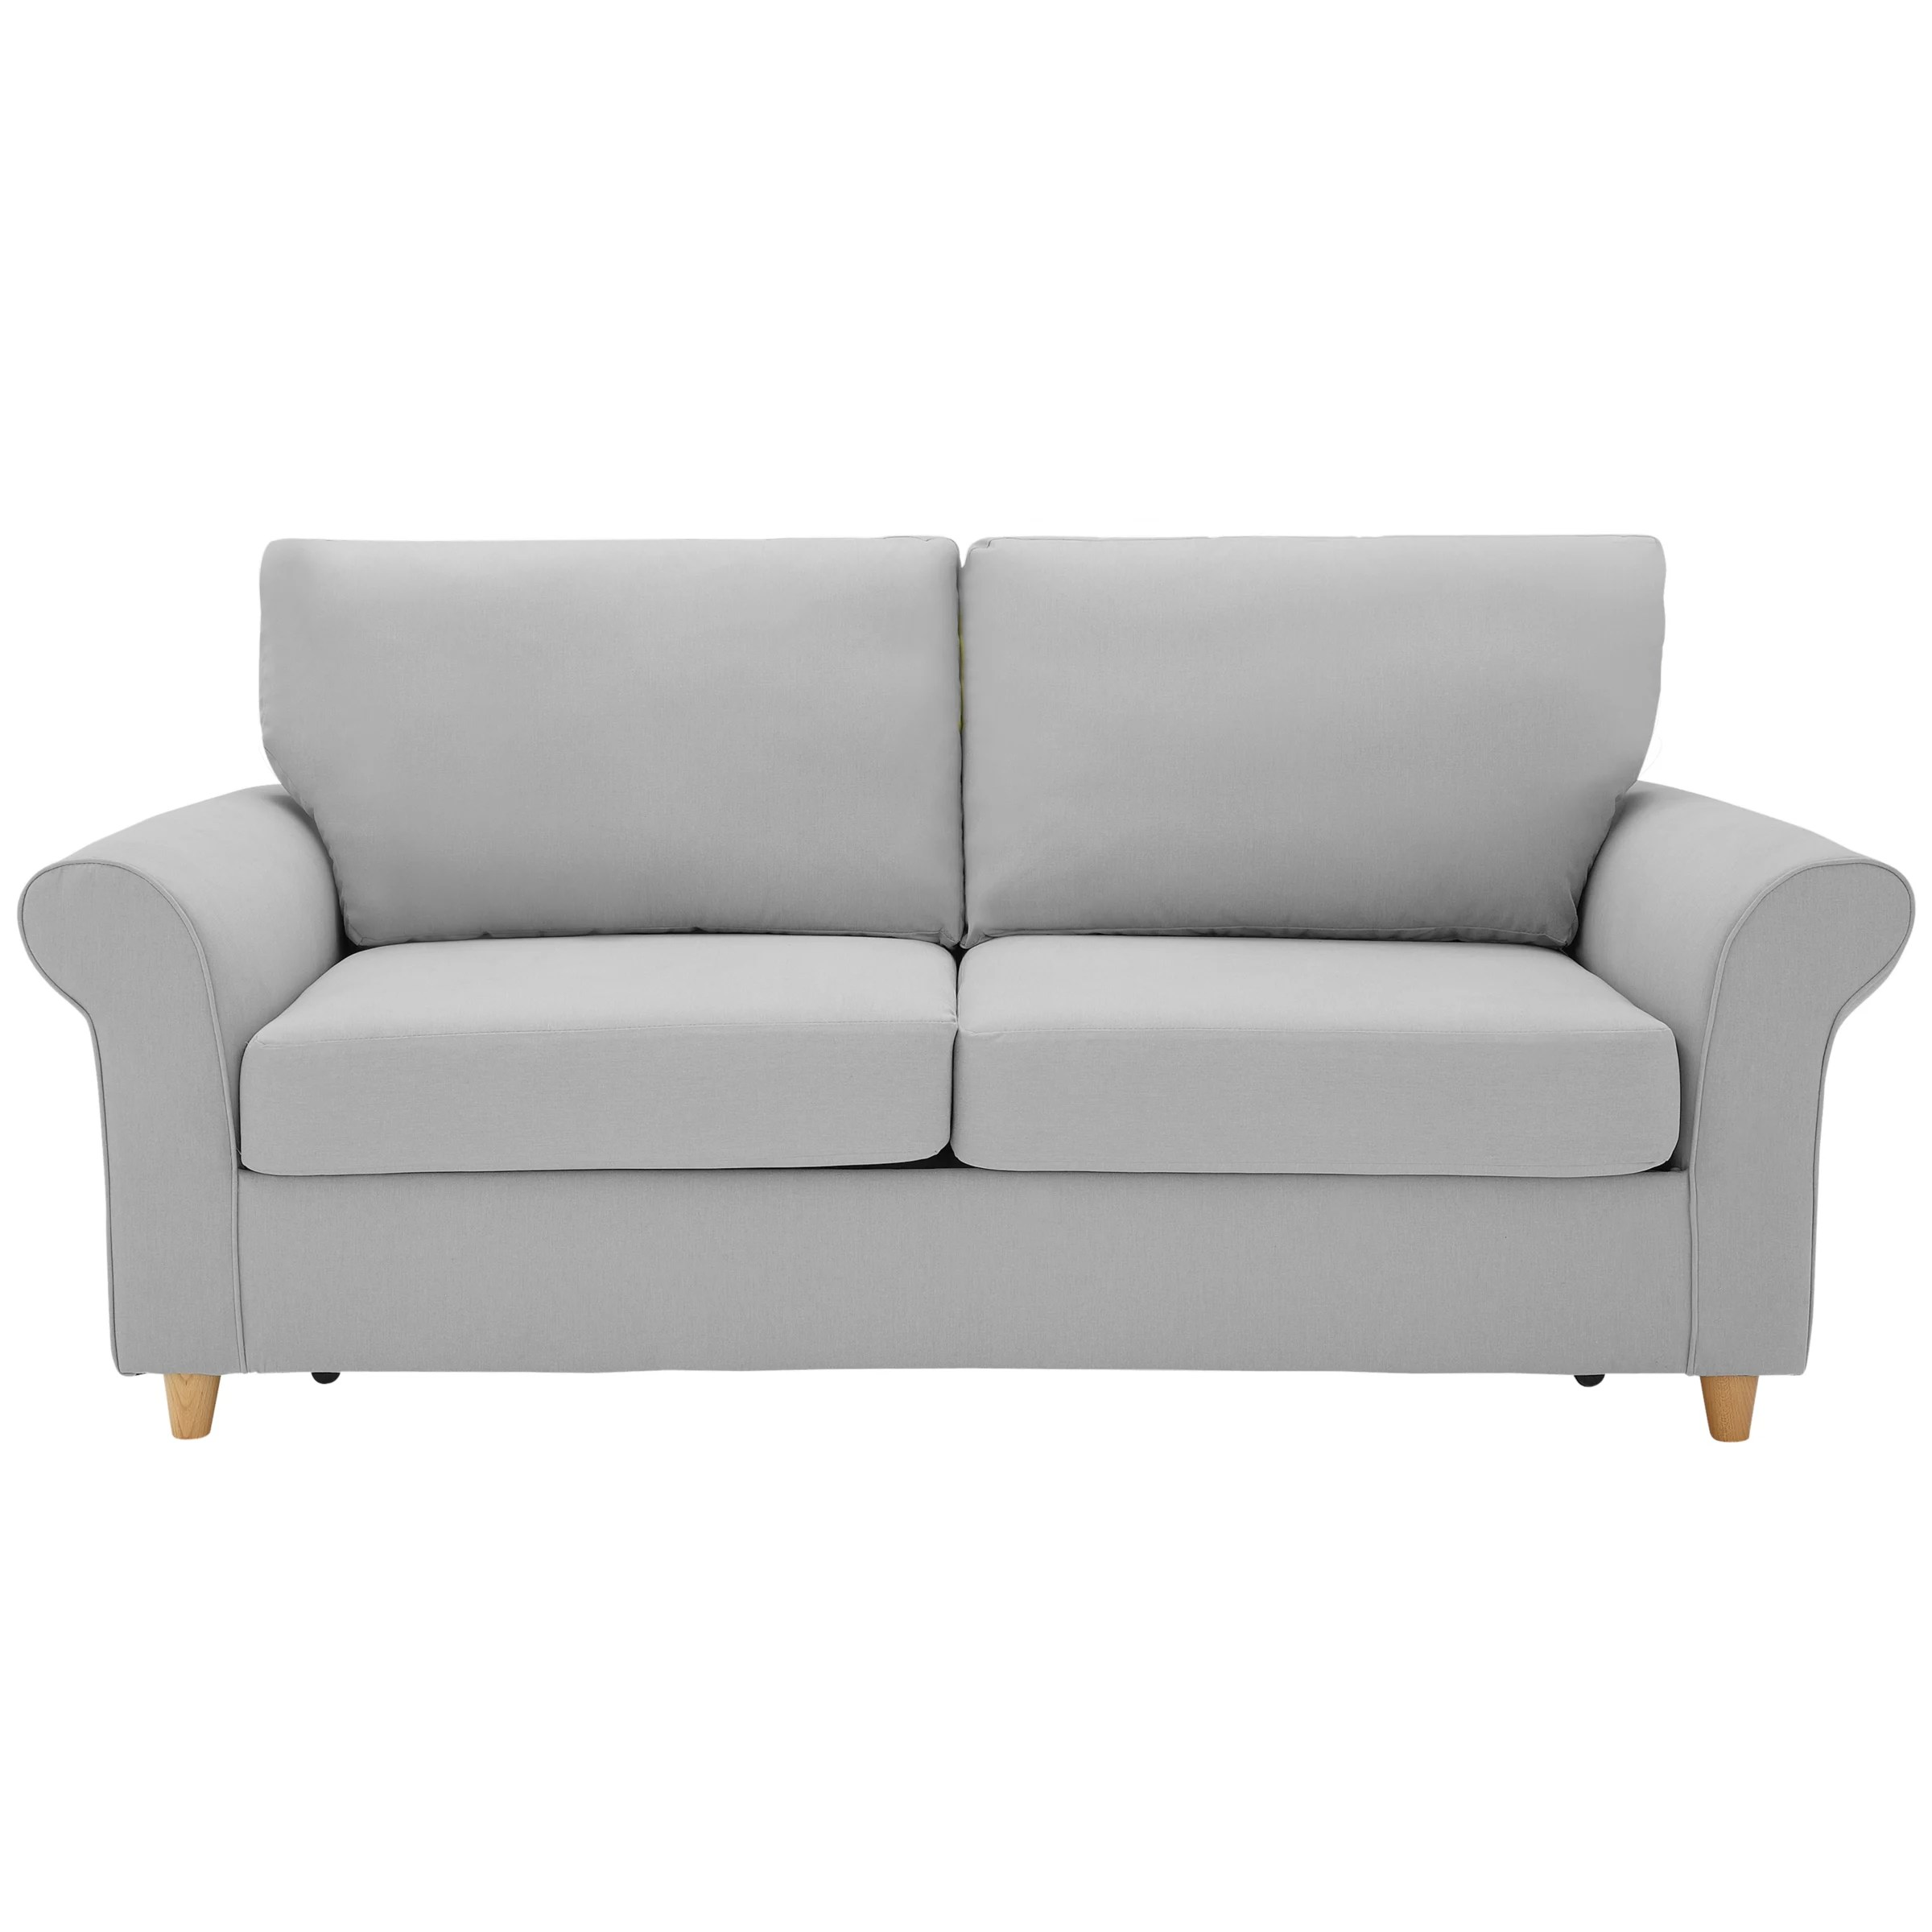 sleeper sofa comparison sofascore tottenham vs liverpool buy cheap large bed compare sofas prices for best